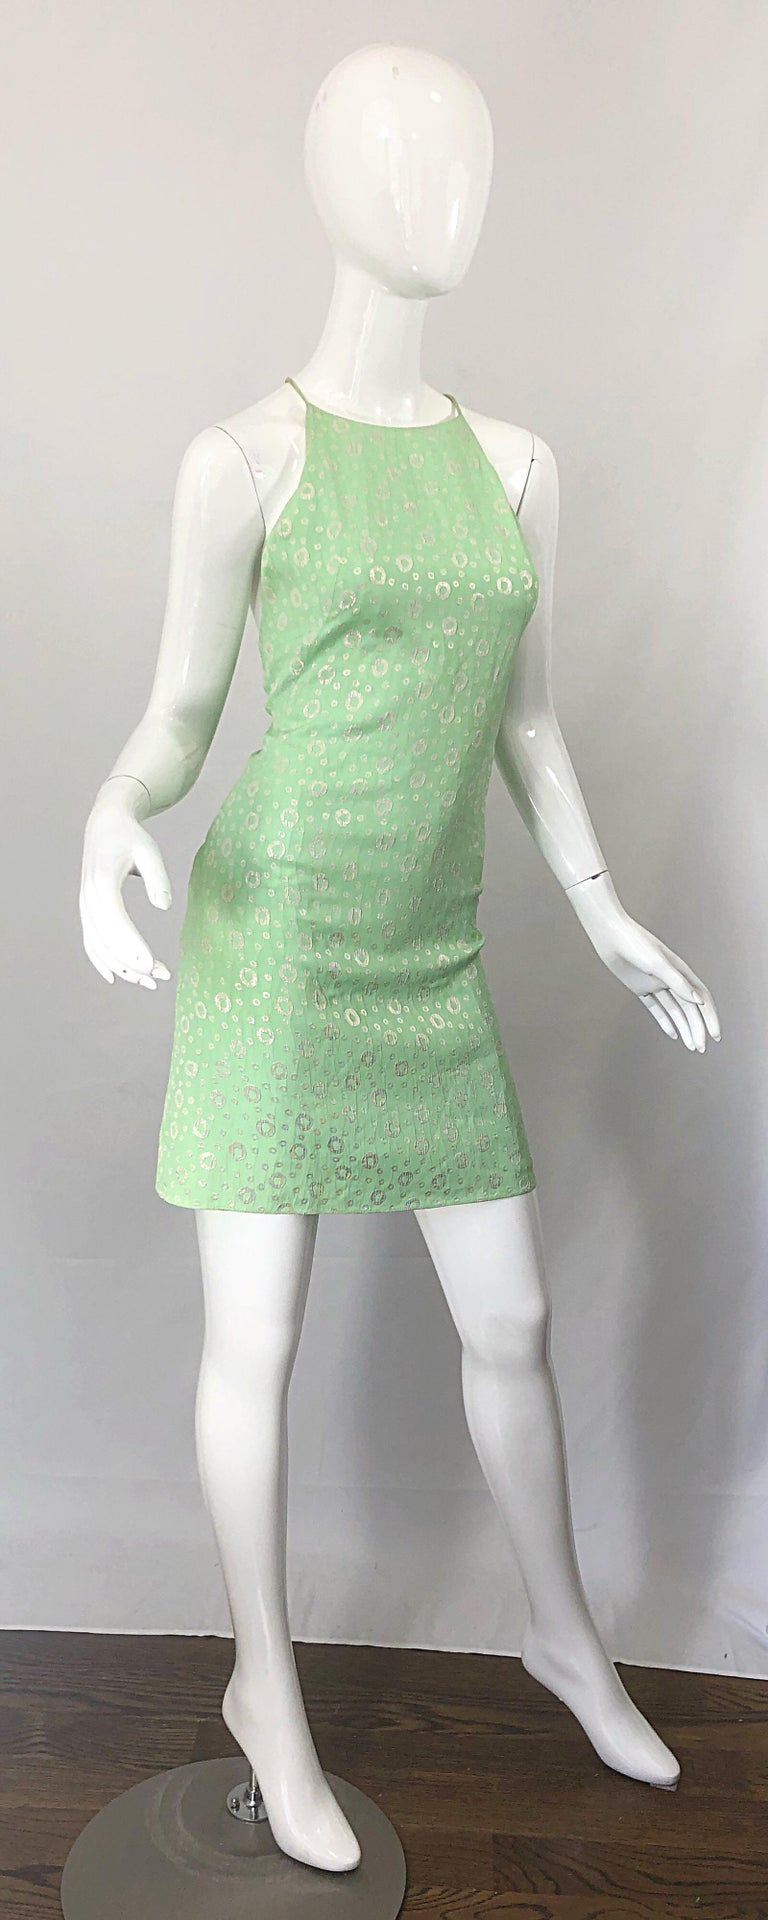 NWT 1990s James Purcell Size 4 / 6 Mint Sherbet Green Gold Racerback Silk Dress For Sale 10